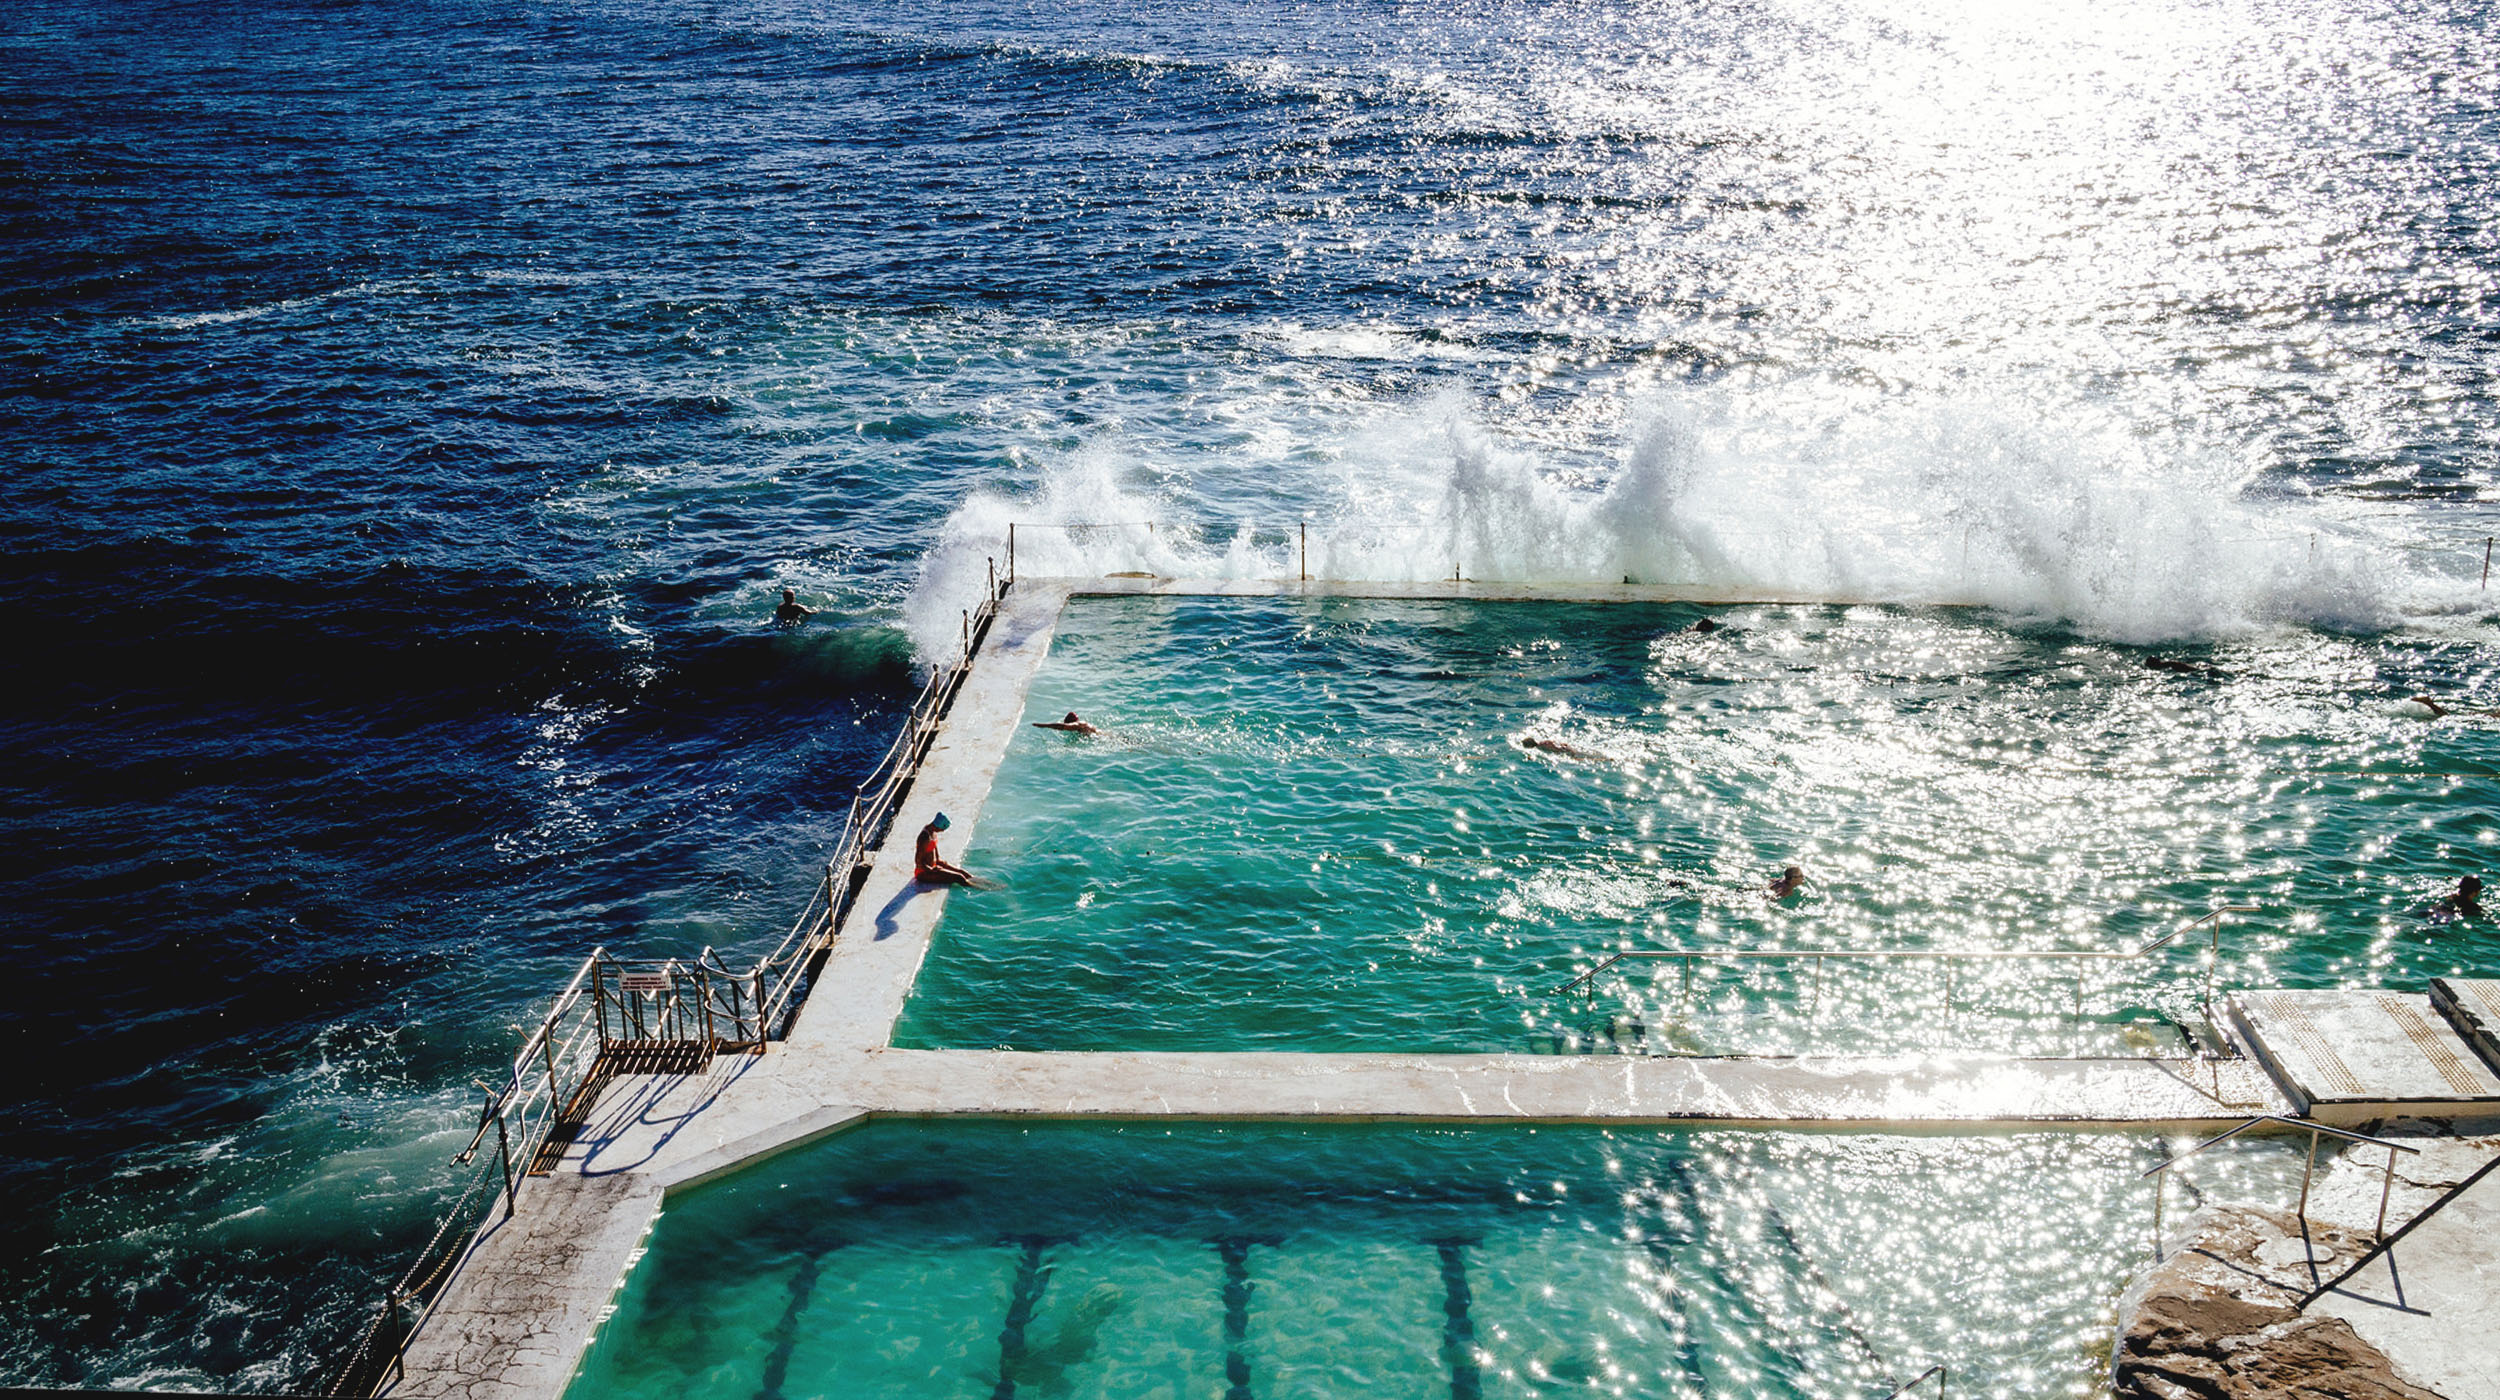 Sunny oceanside pools with waves crashing into the side and a person diving in